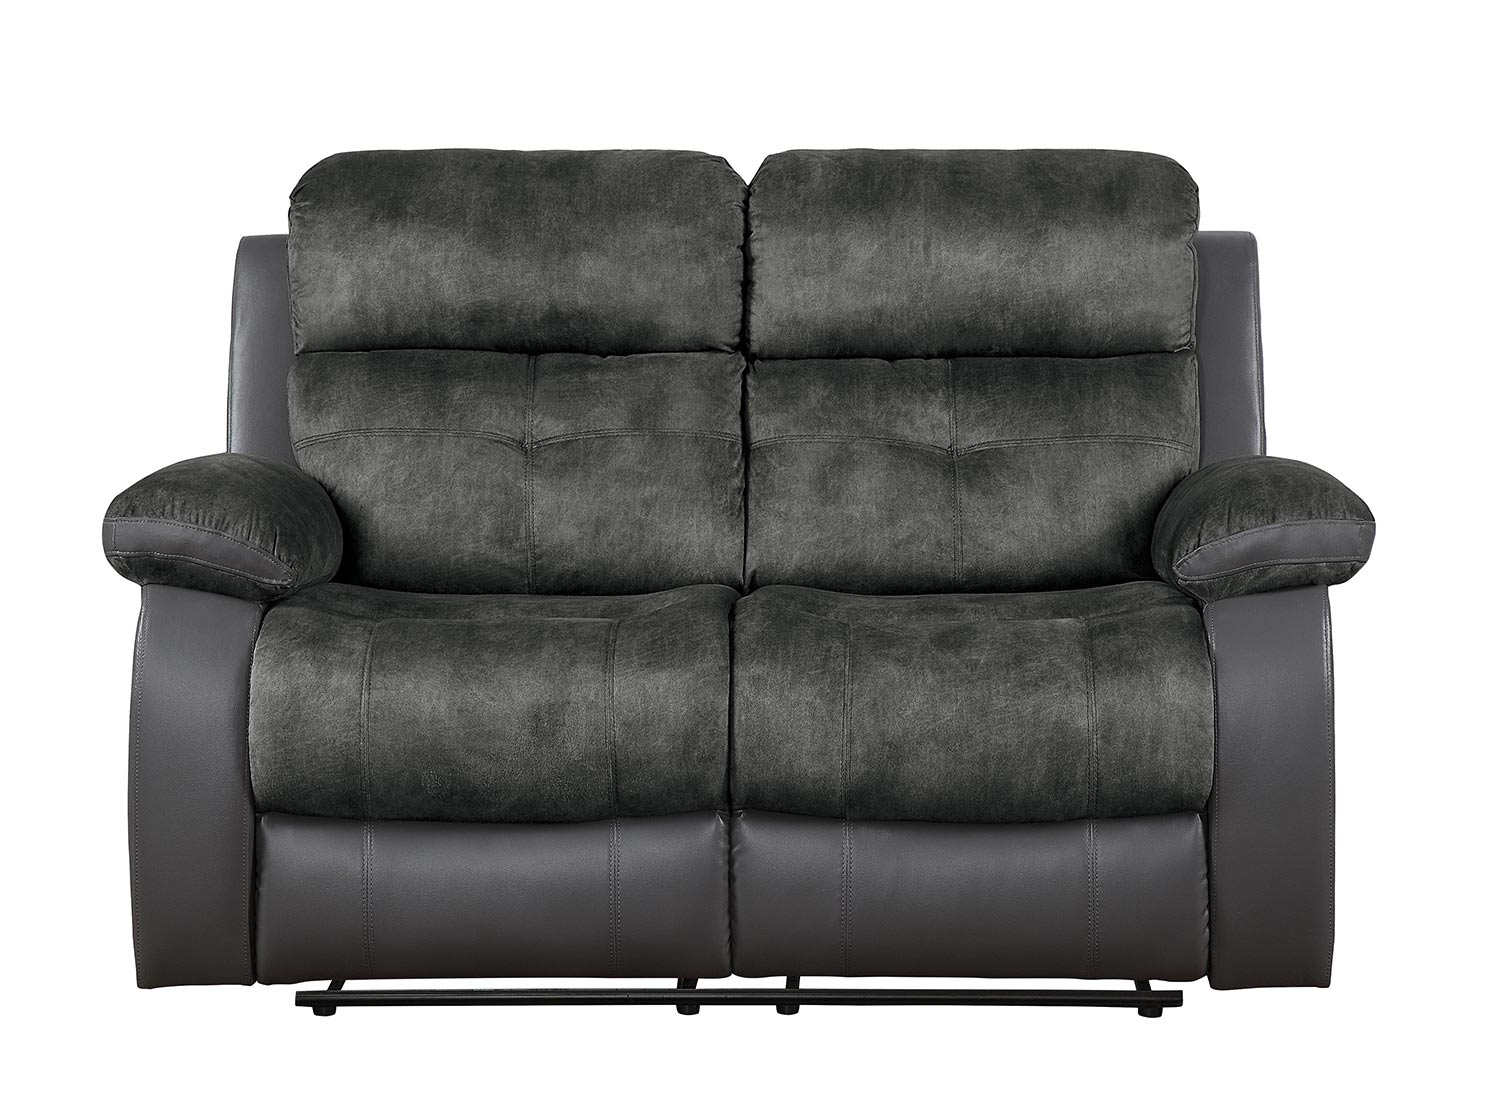 Homelegance Acadia Double Reclining Love Seat - Gray microfiber and bi-cast vinyl